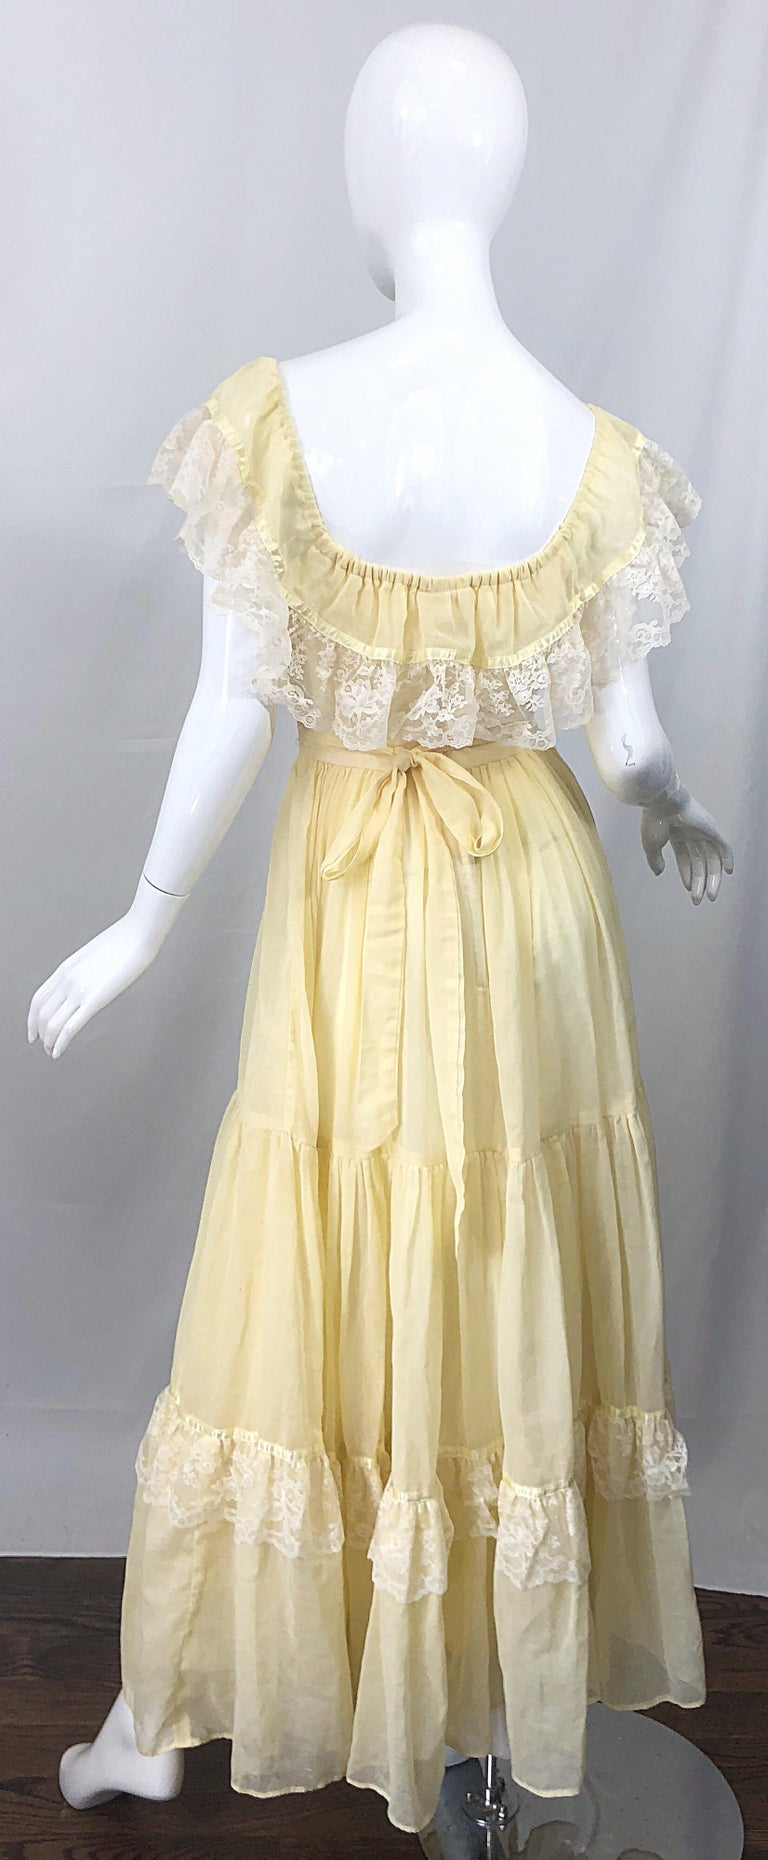 1970s Pale Light Yellow Cotton Voile + Lace Vintage Boho 70s Maxi Dress In Excellent Condition For Sale In Chicago, IL